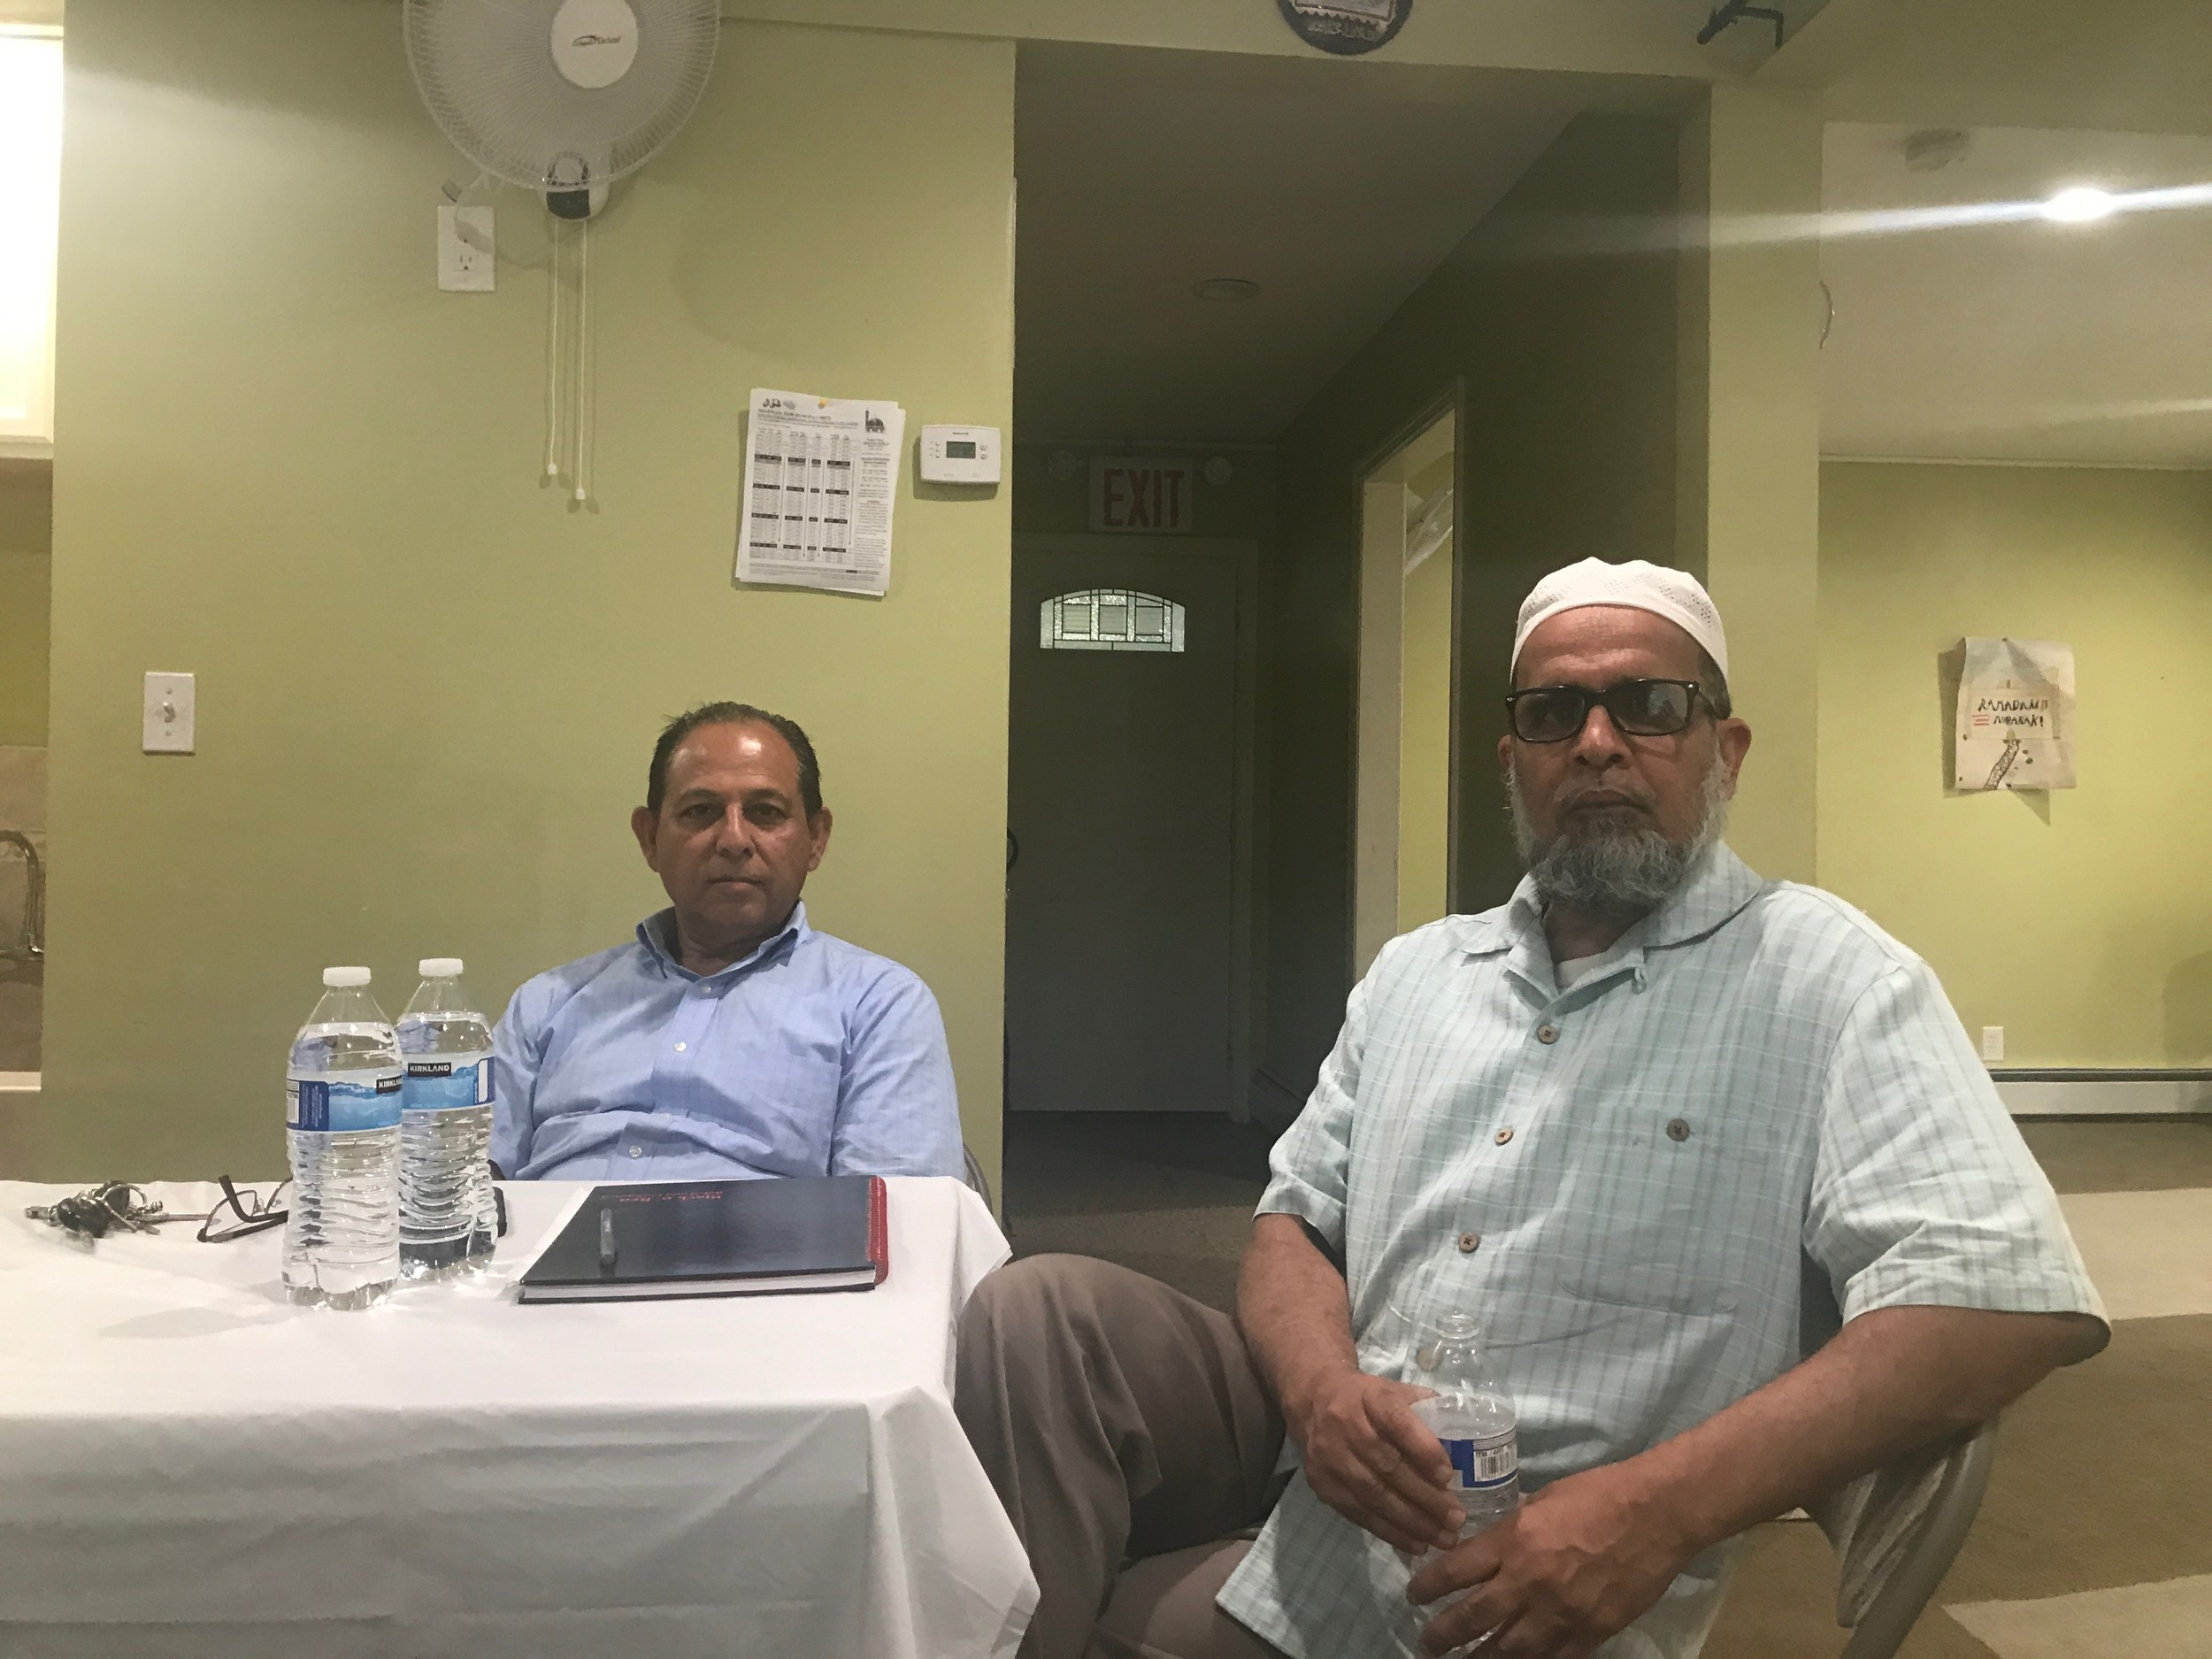 The Islamic Center of Five Towns was established in 2006 by Tanvir Ahmad, left, and Eqbal Rasheed.